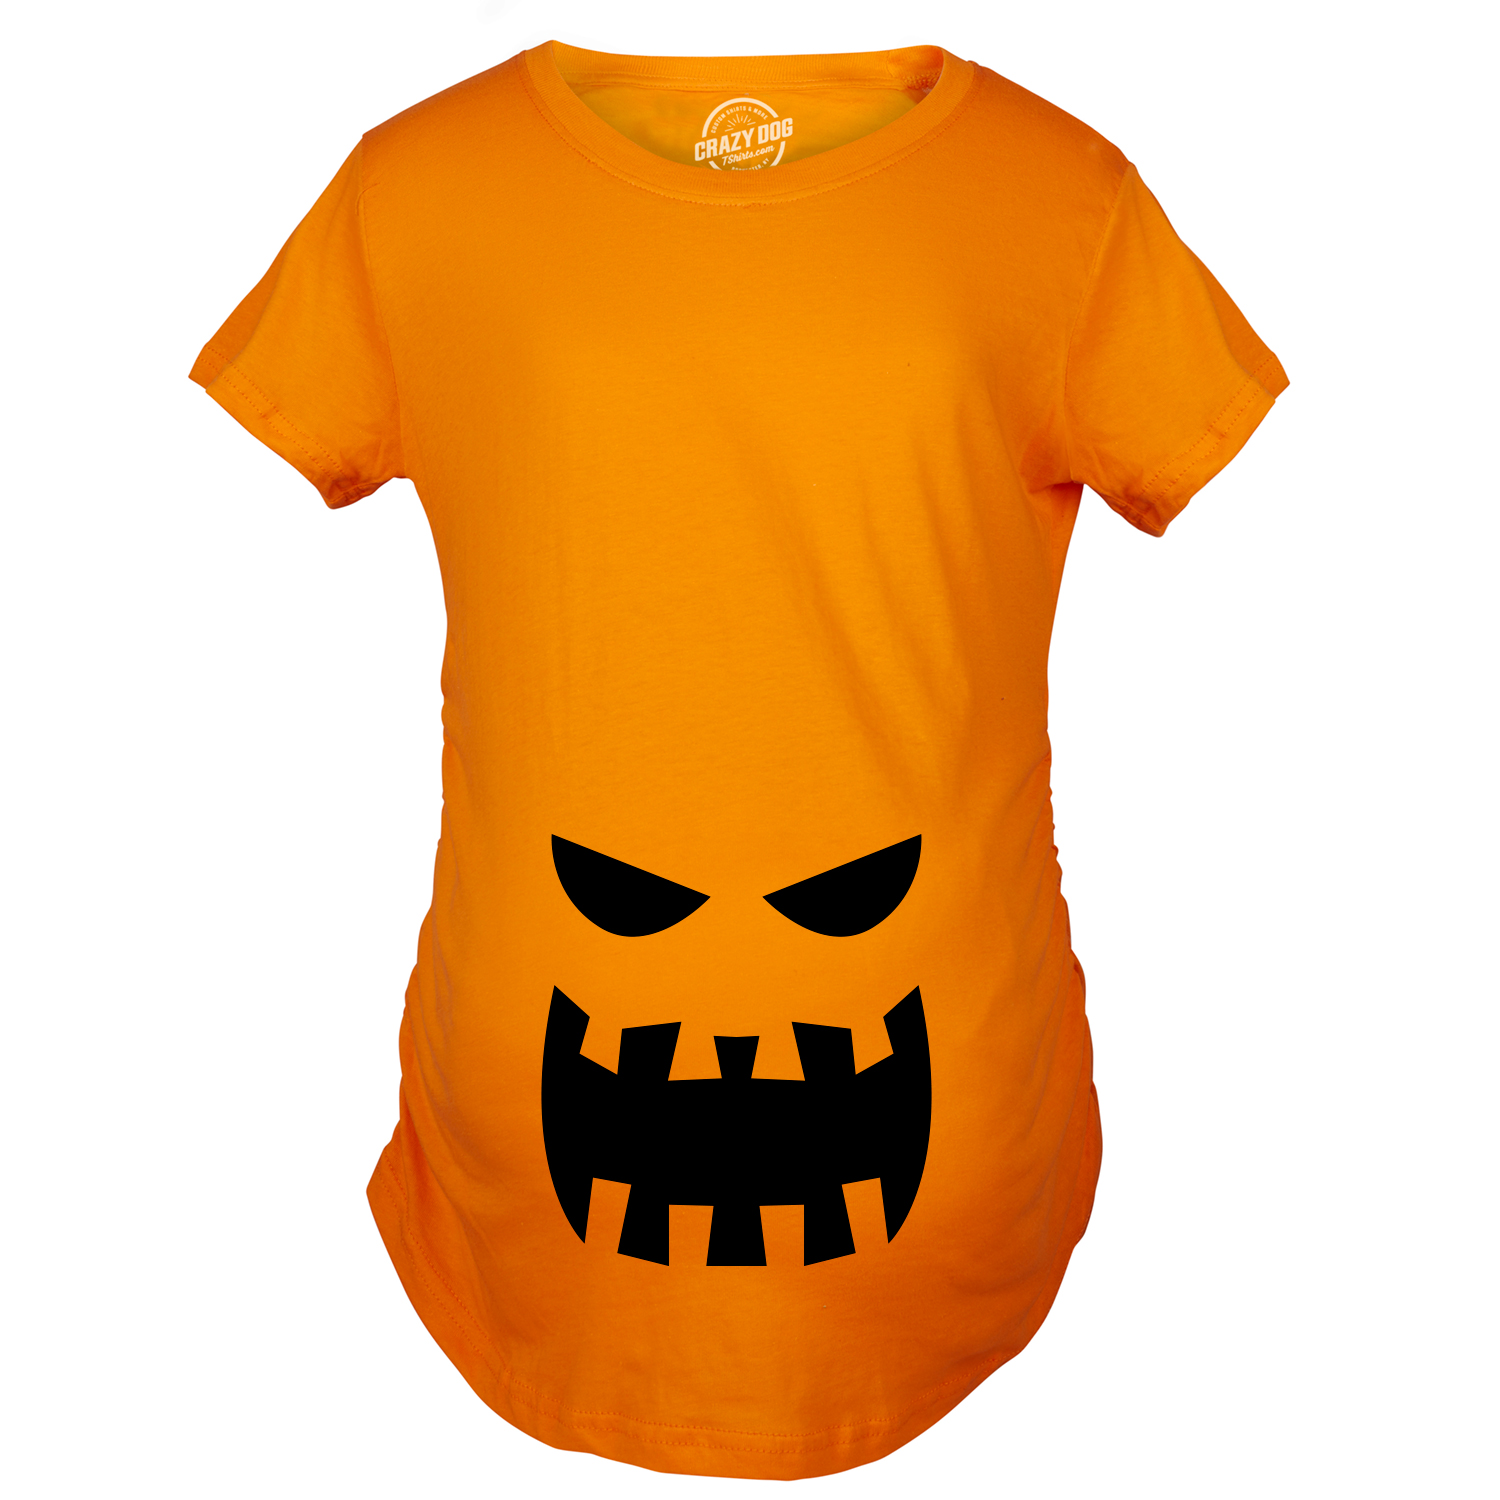 e70e389d Crazy Dog Tshirts Maternity Scary Teeth JackOLantern T-Shirt Cute Halloween Pregnancy  Tee